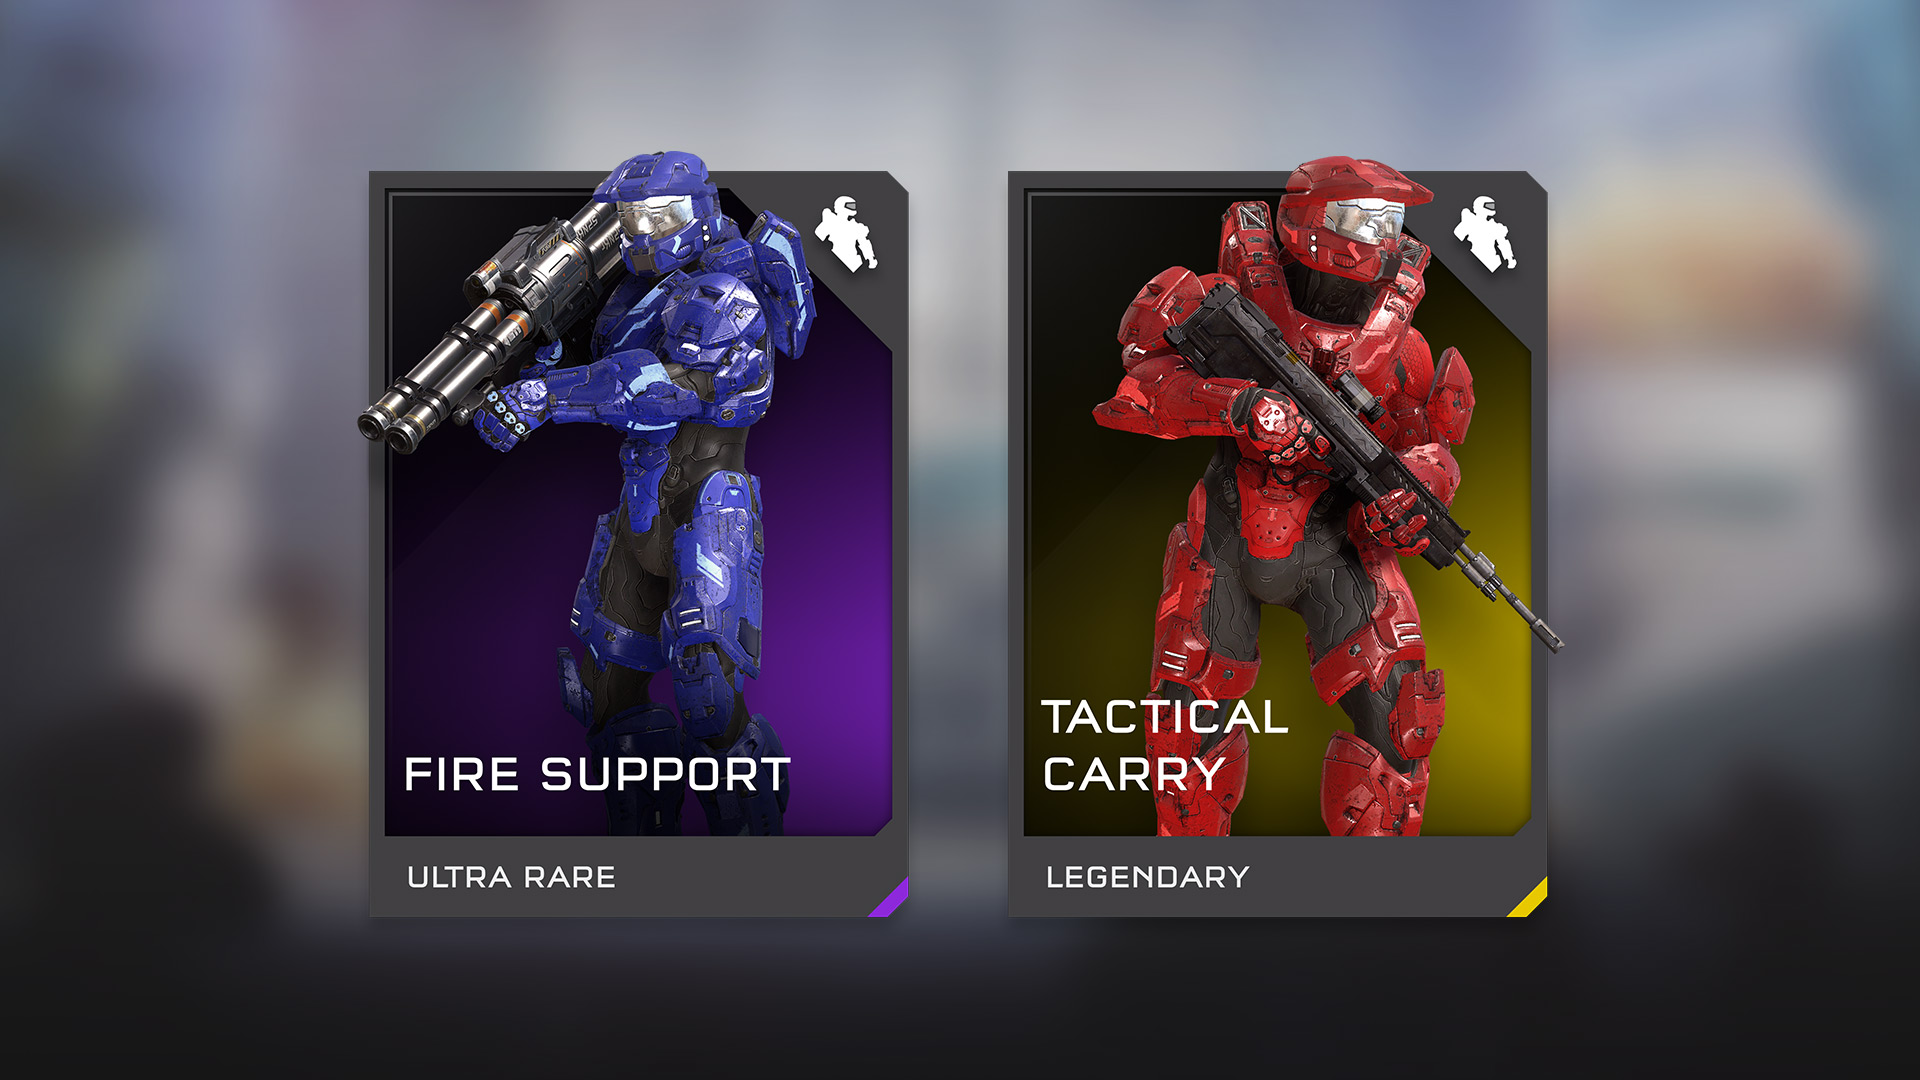 Cartographer's Gift | Games | Halo - Official Site